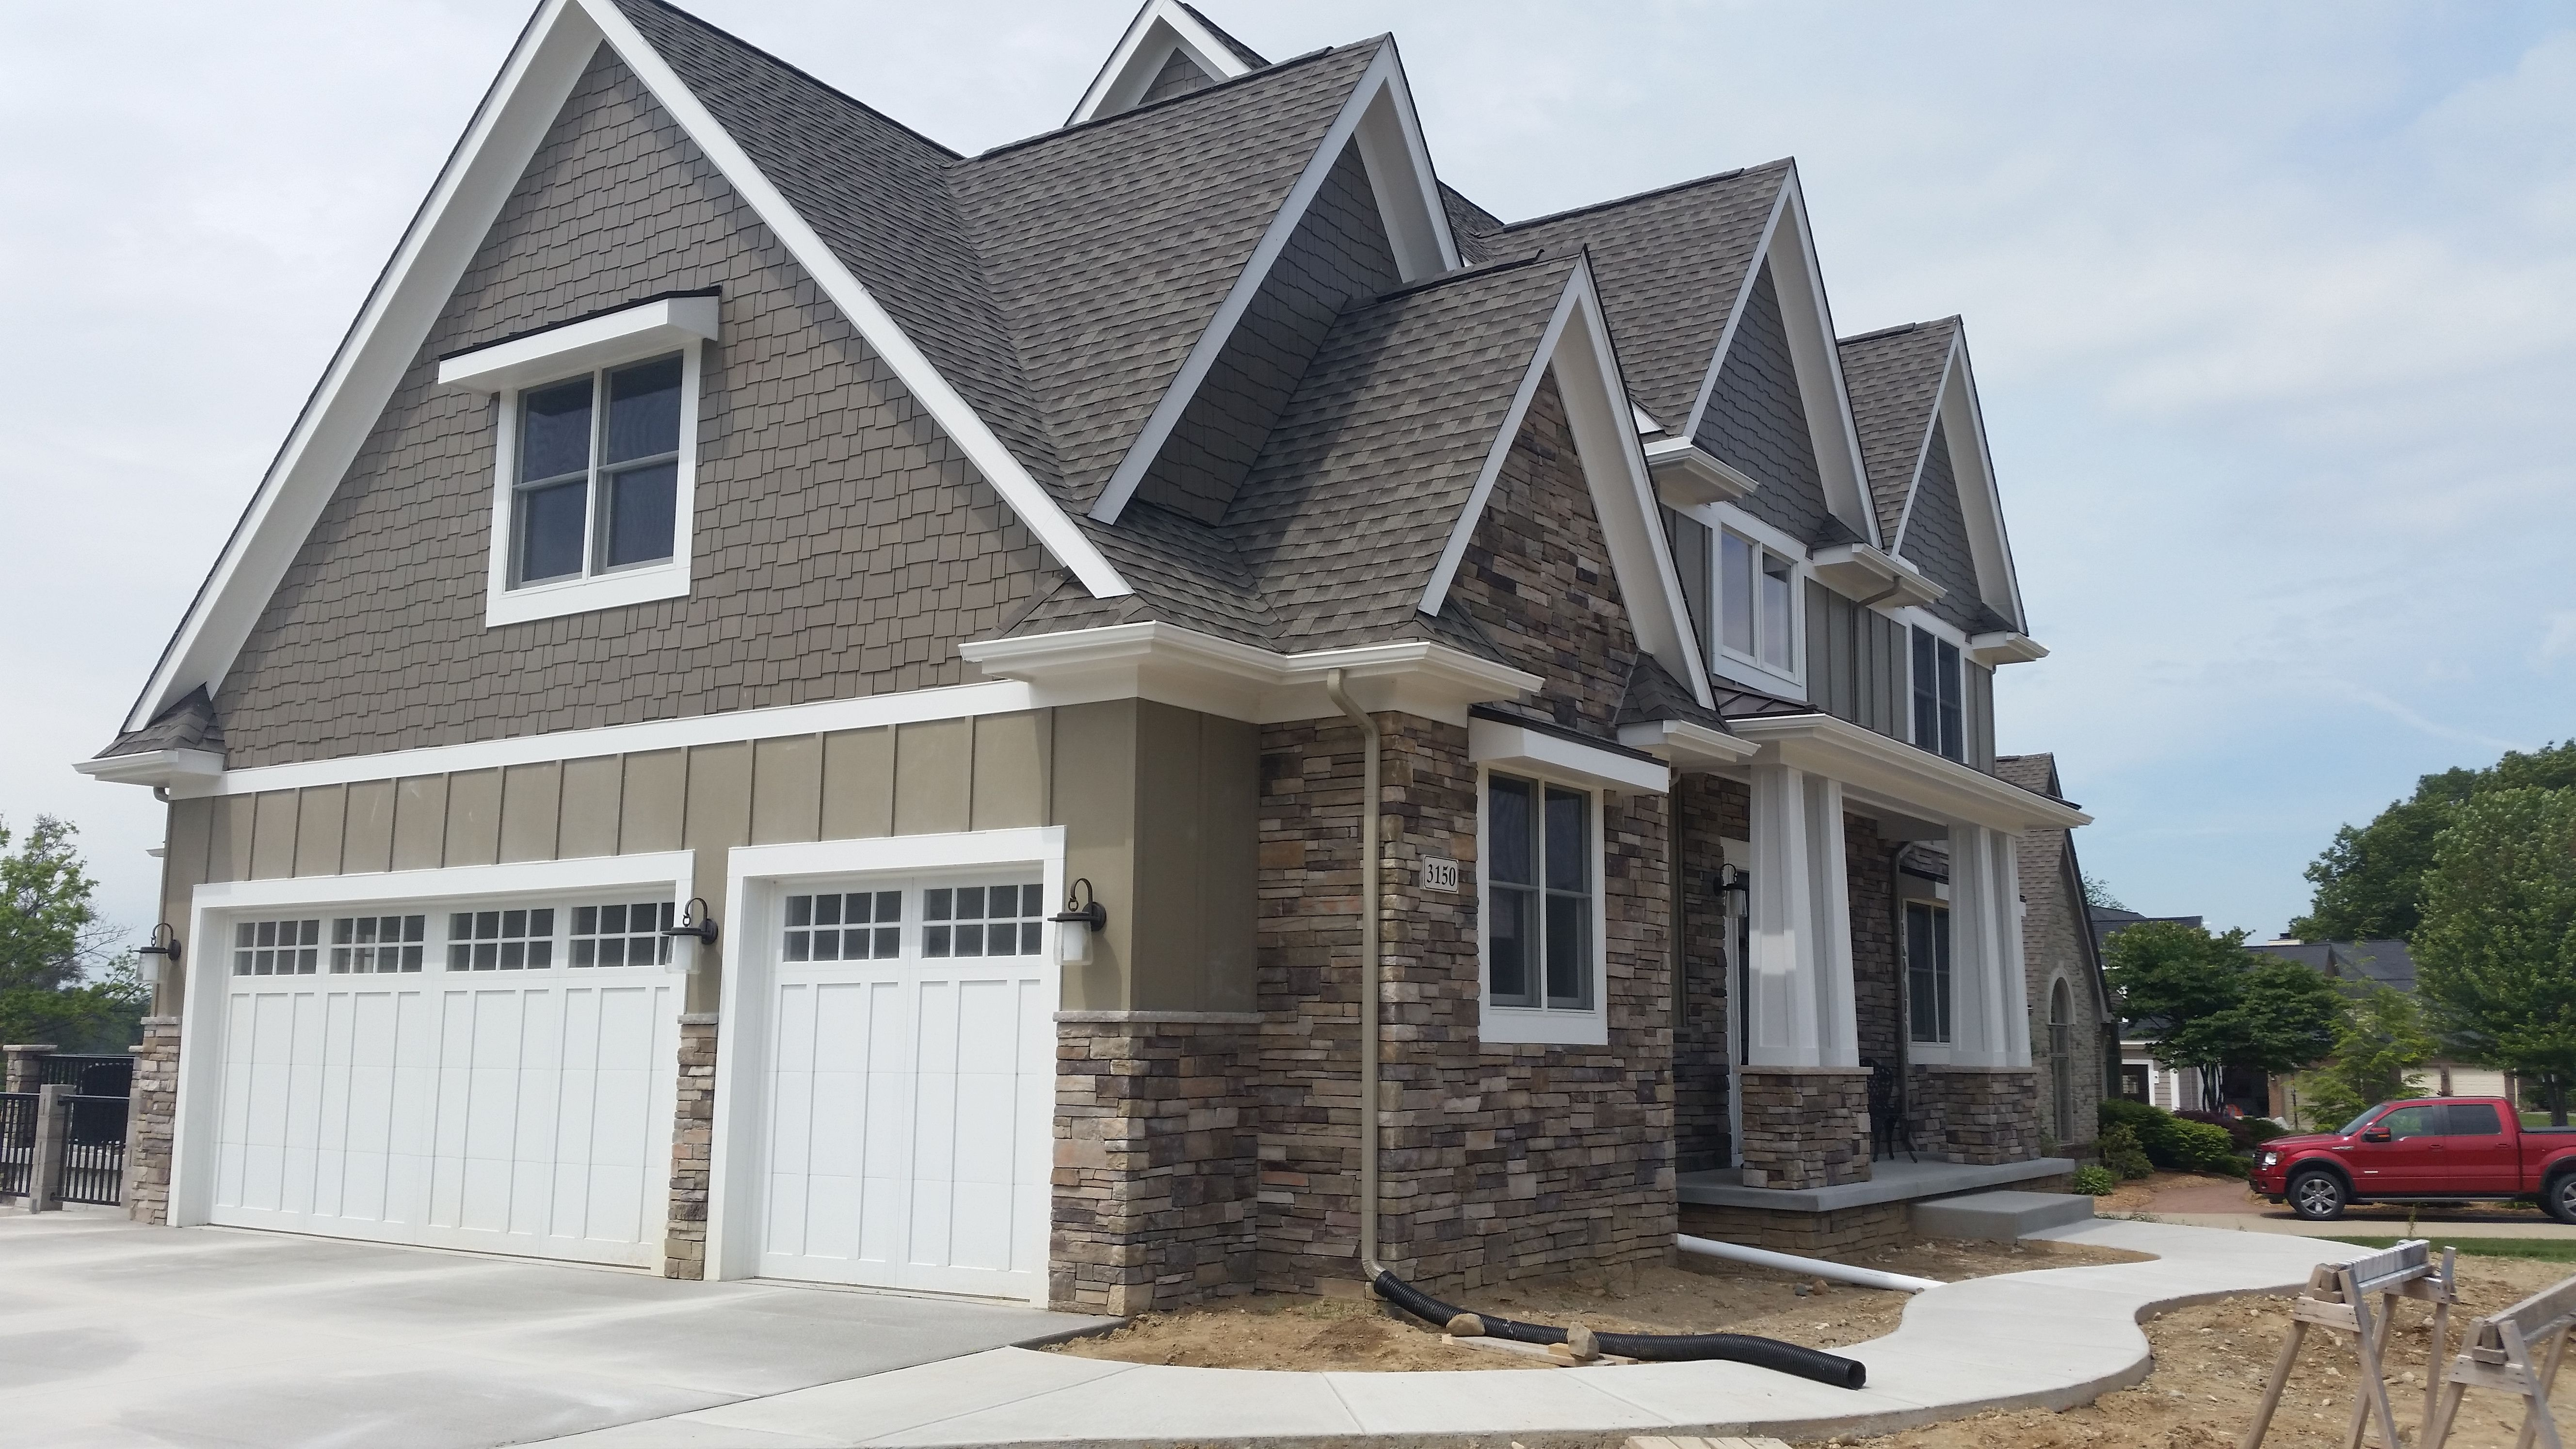 Country Home Exterior Color Schemes bucks county country ledgestoneboral cultured stone | exterior